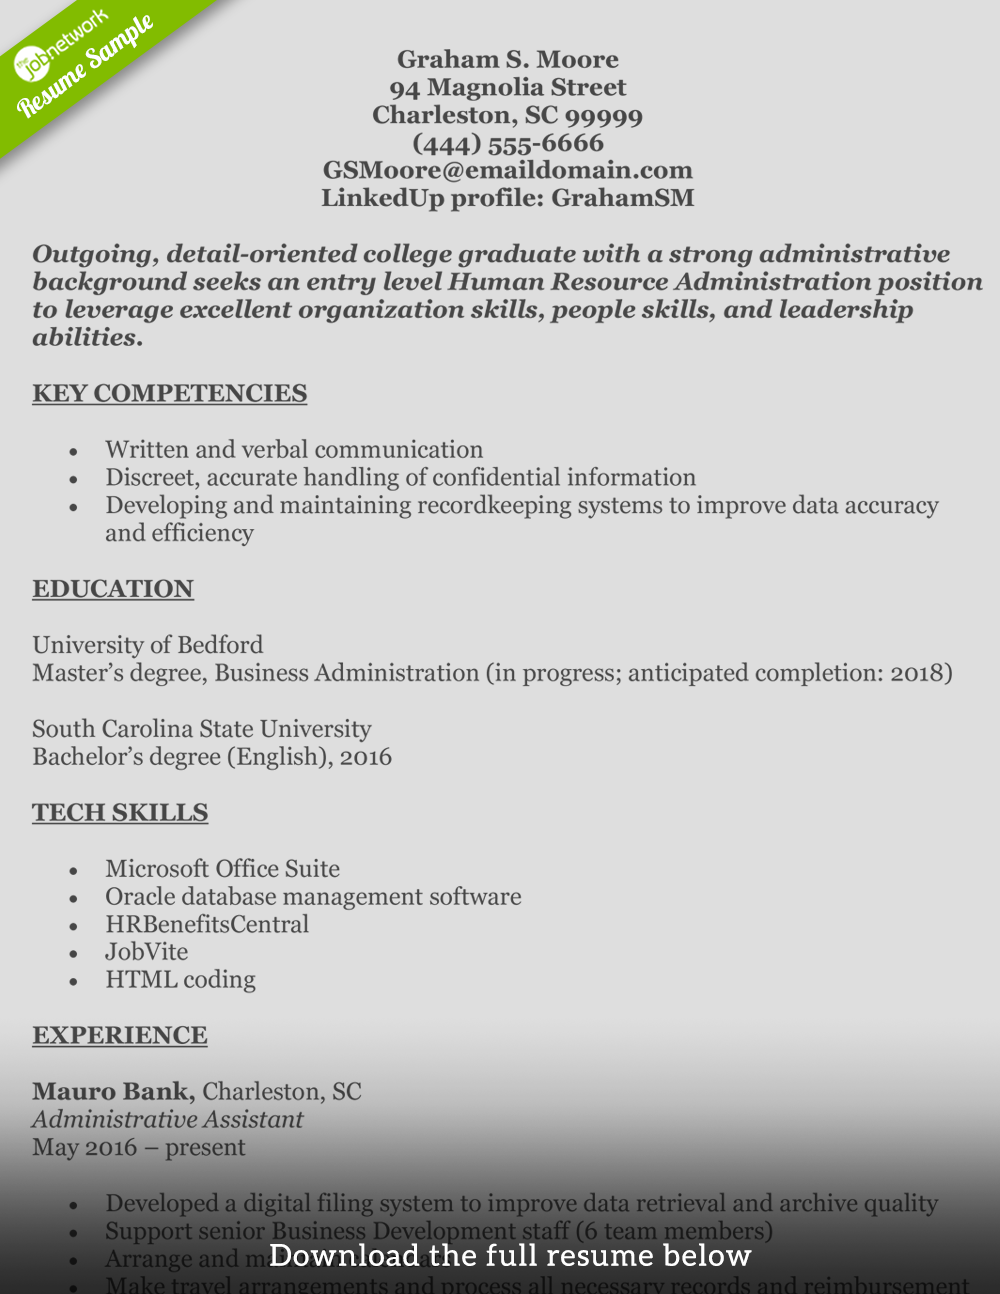 human resources resume graham - Human Resources Resume Template